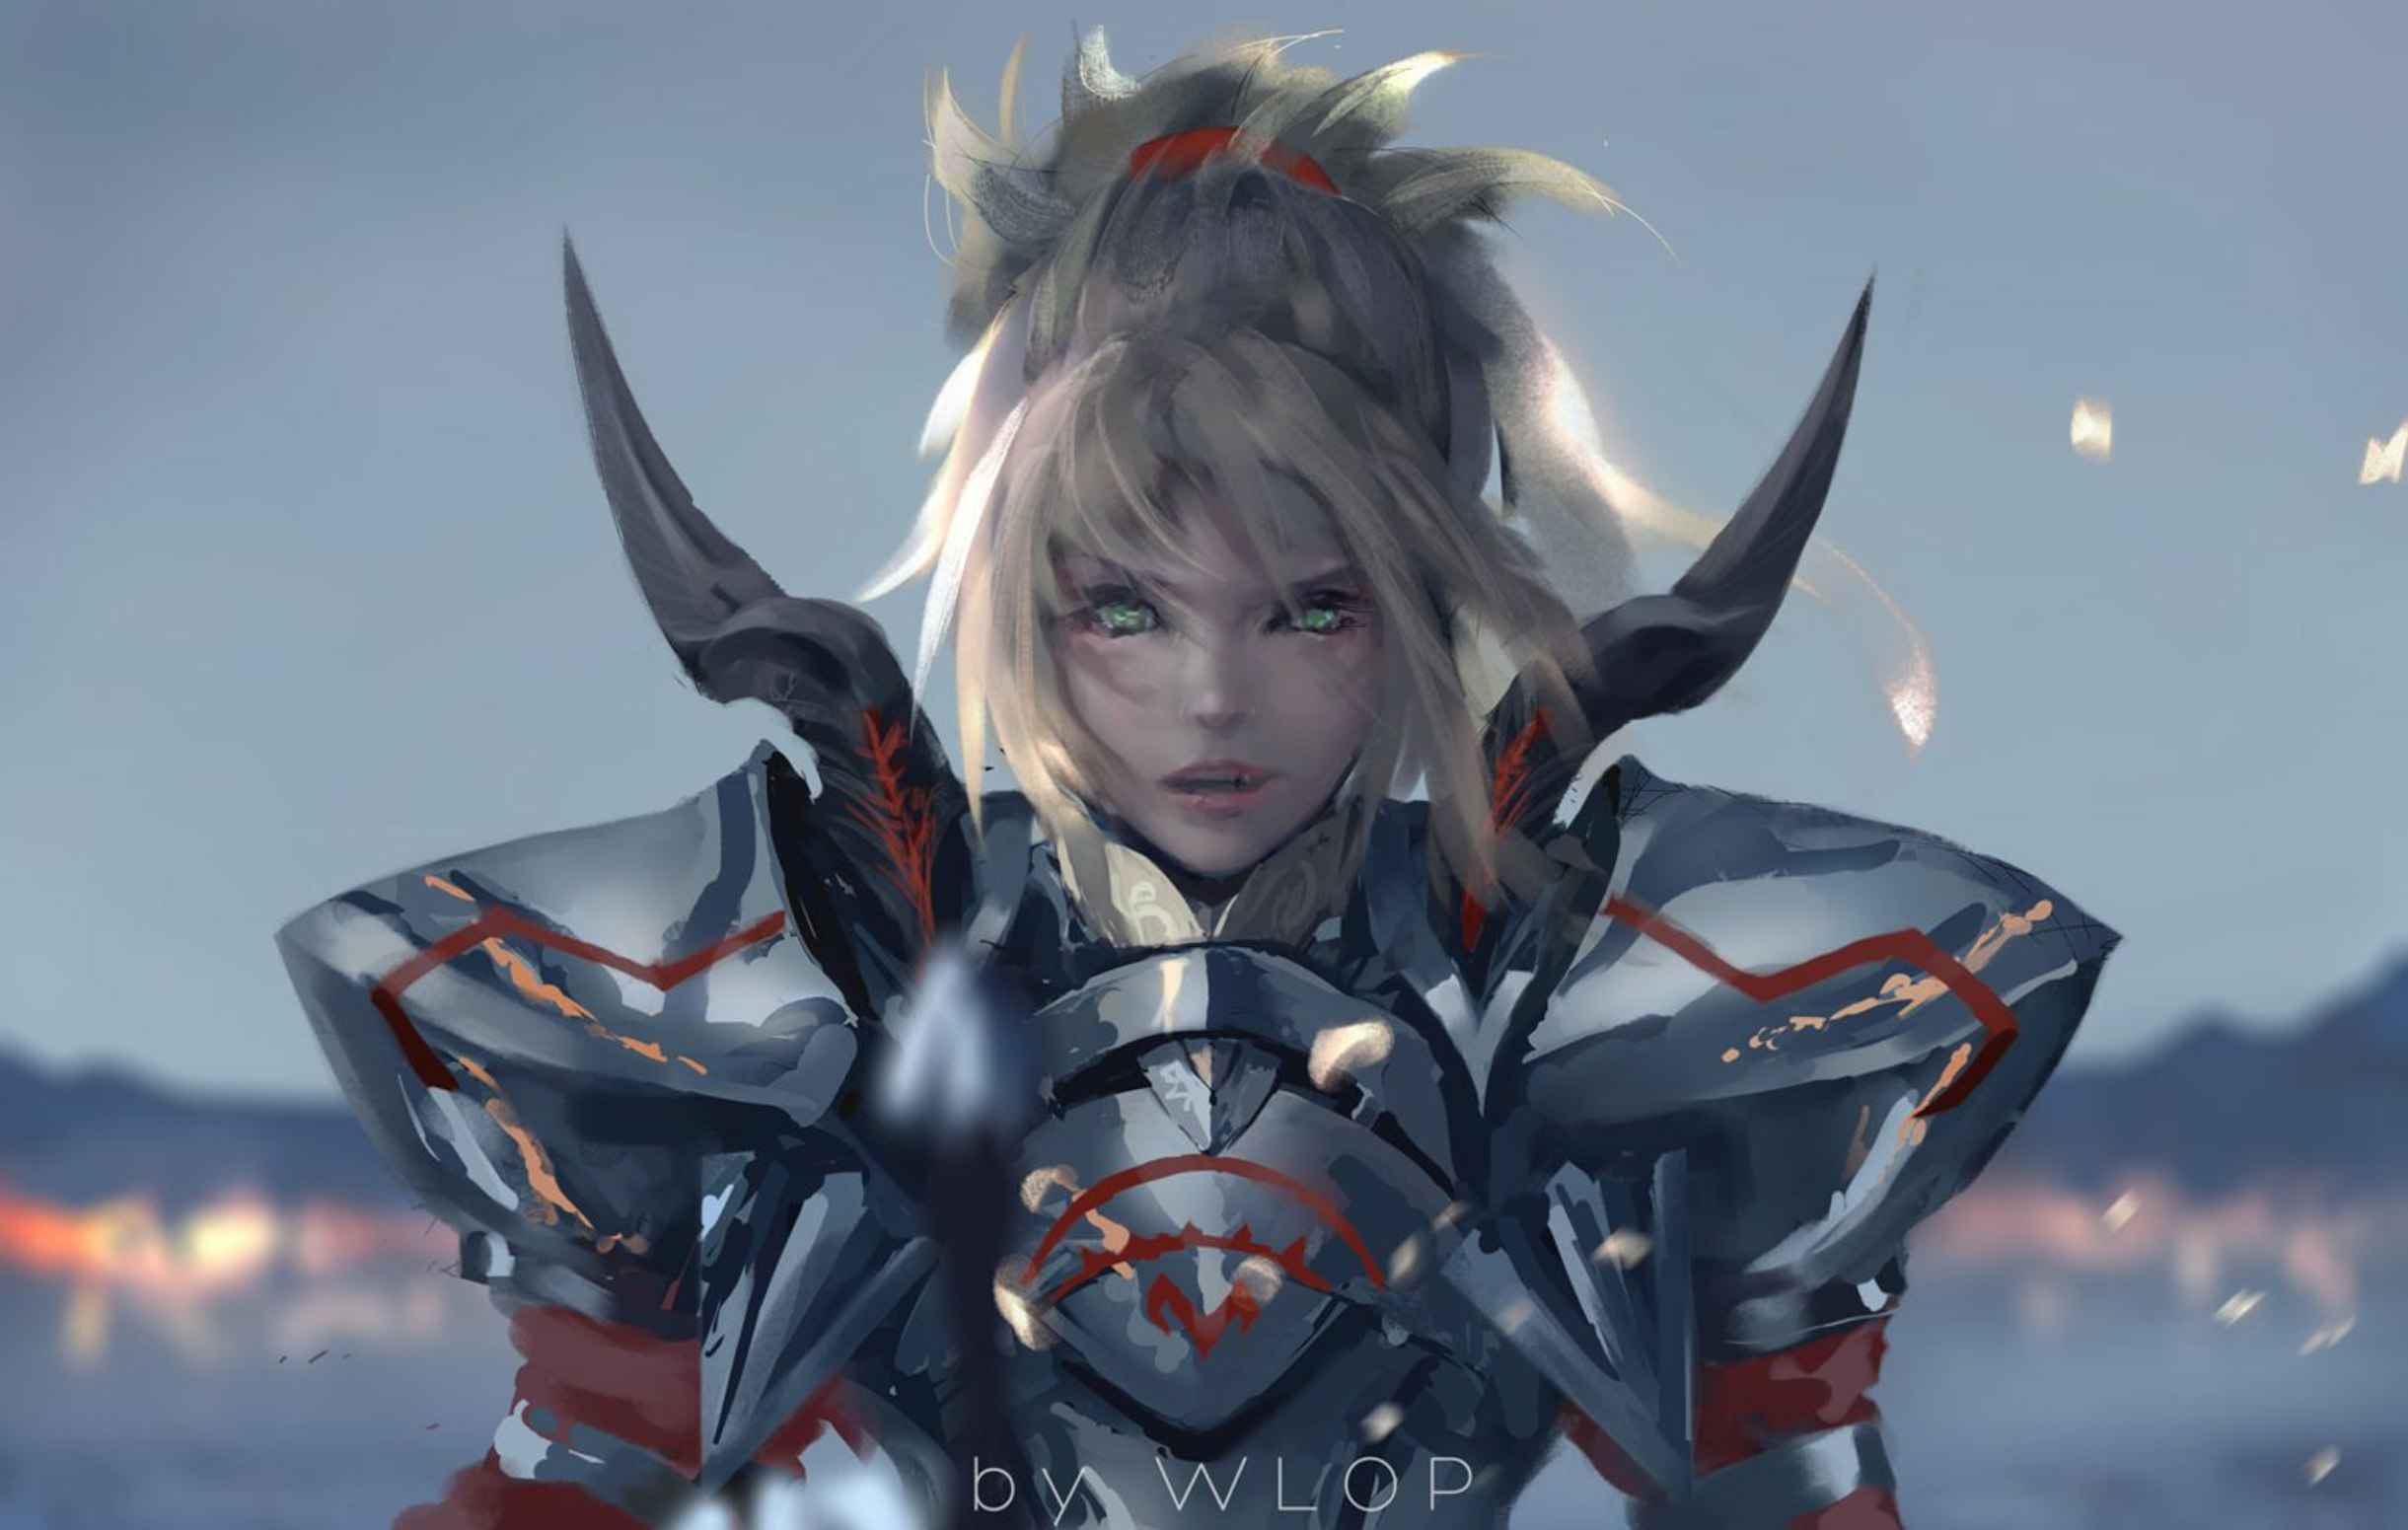 Anime 2441x1551 digital art artwork WLOP armor looking at viewer green eyes Fate Series Fate/Apocrypha  Fate/Grand Order Mordred (Fate/Apocrypha) ponytail female warrior 2D fan art blonde